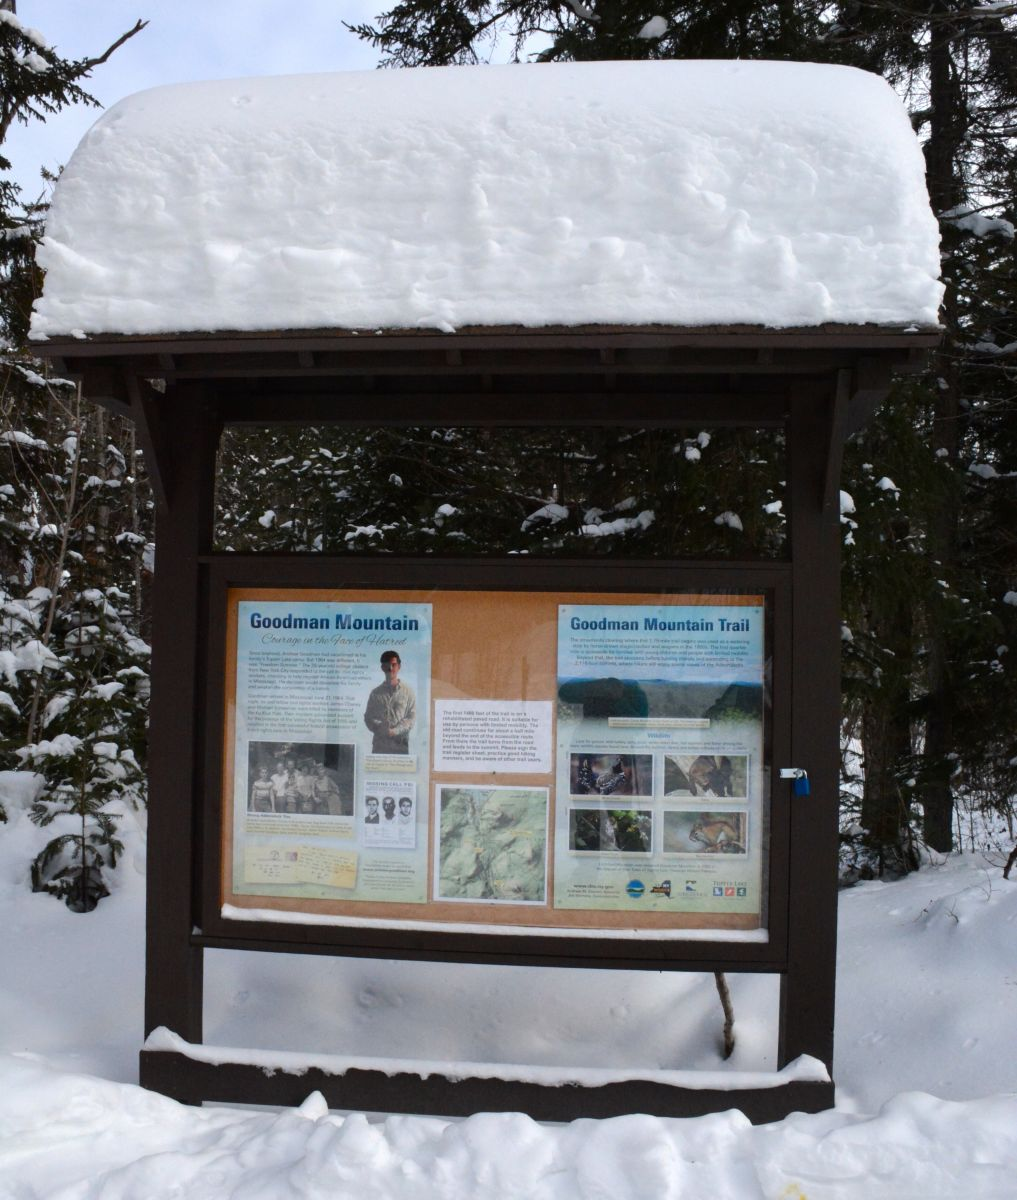 The informational display detailing the life of Mr. Andrew Goodman at the trail register of Goodman Mountain